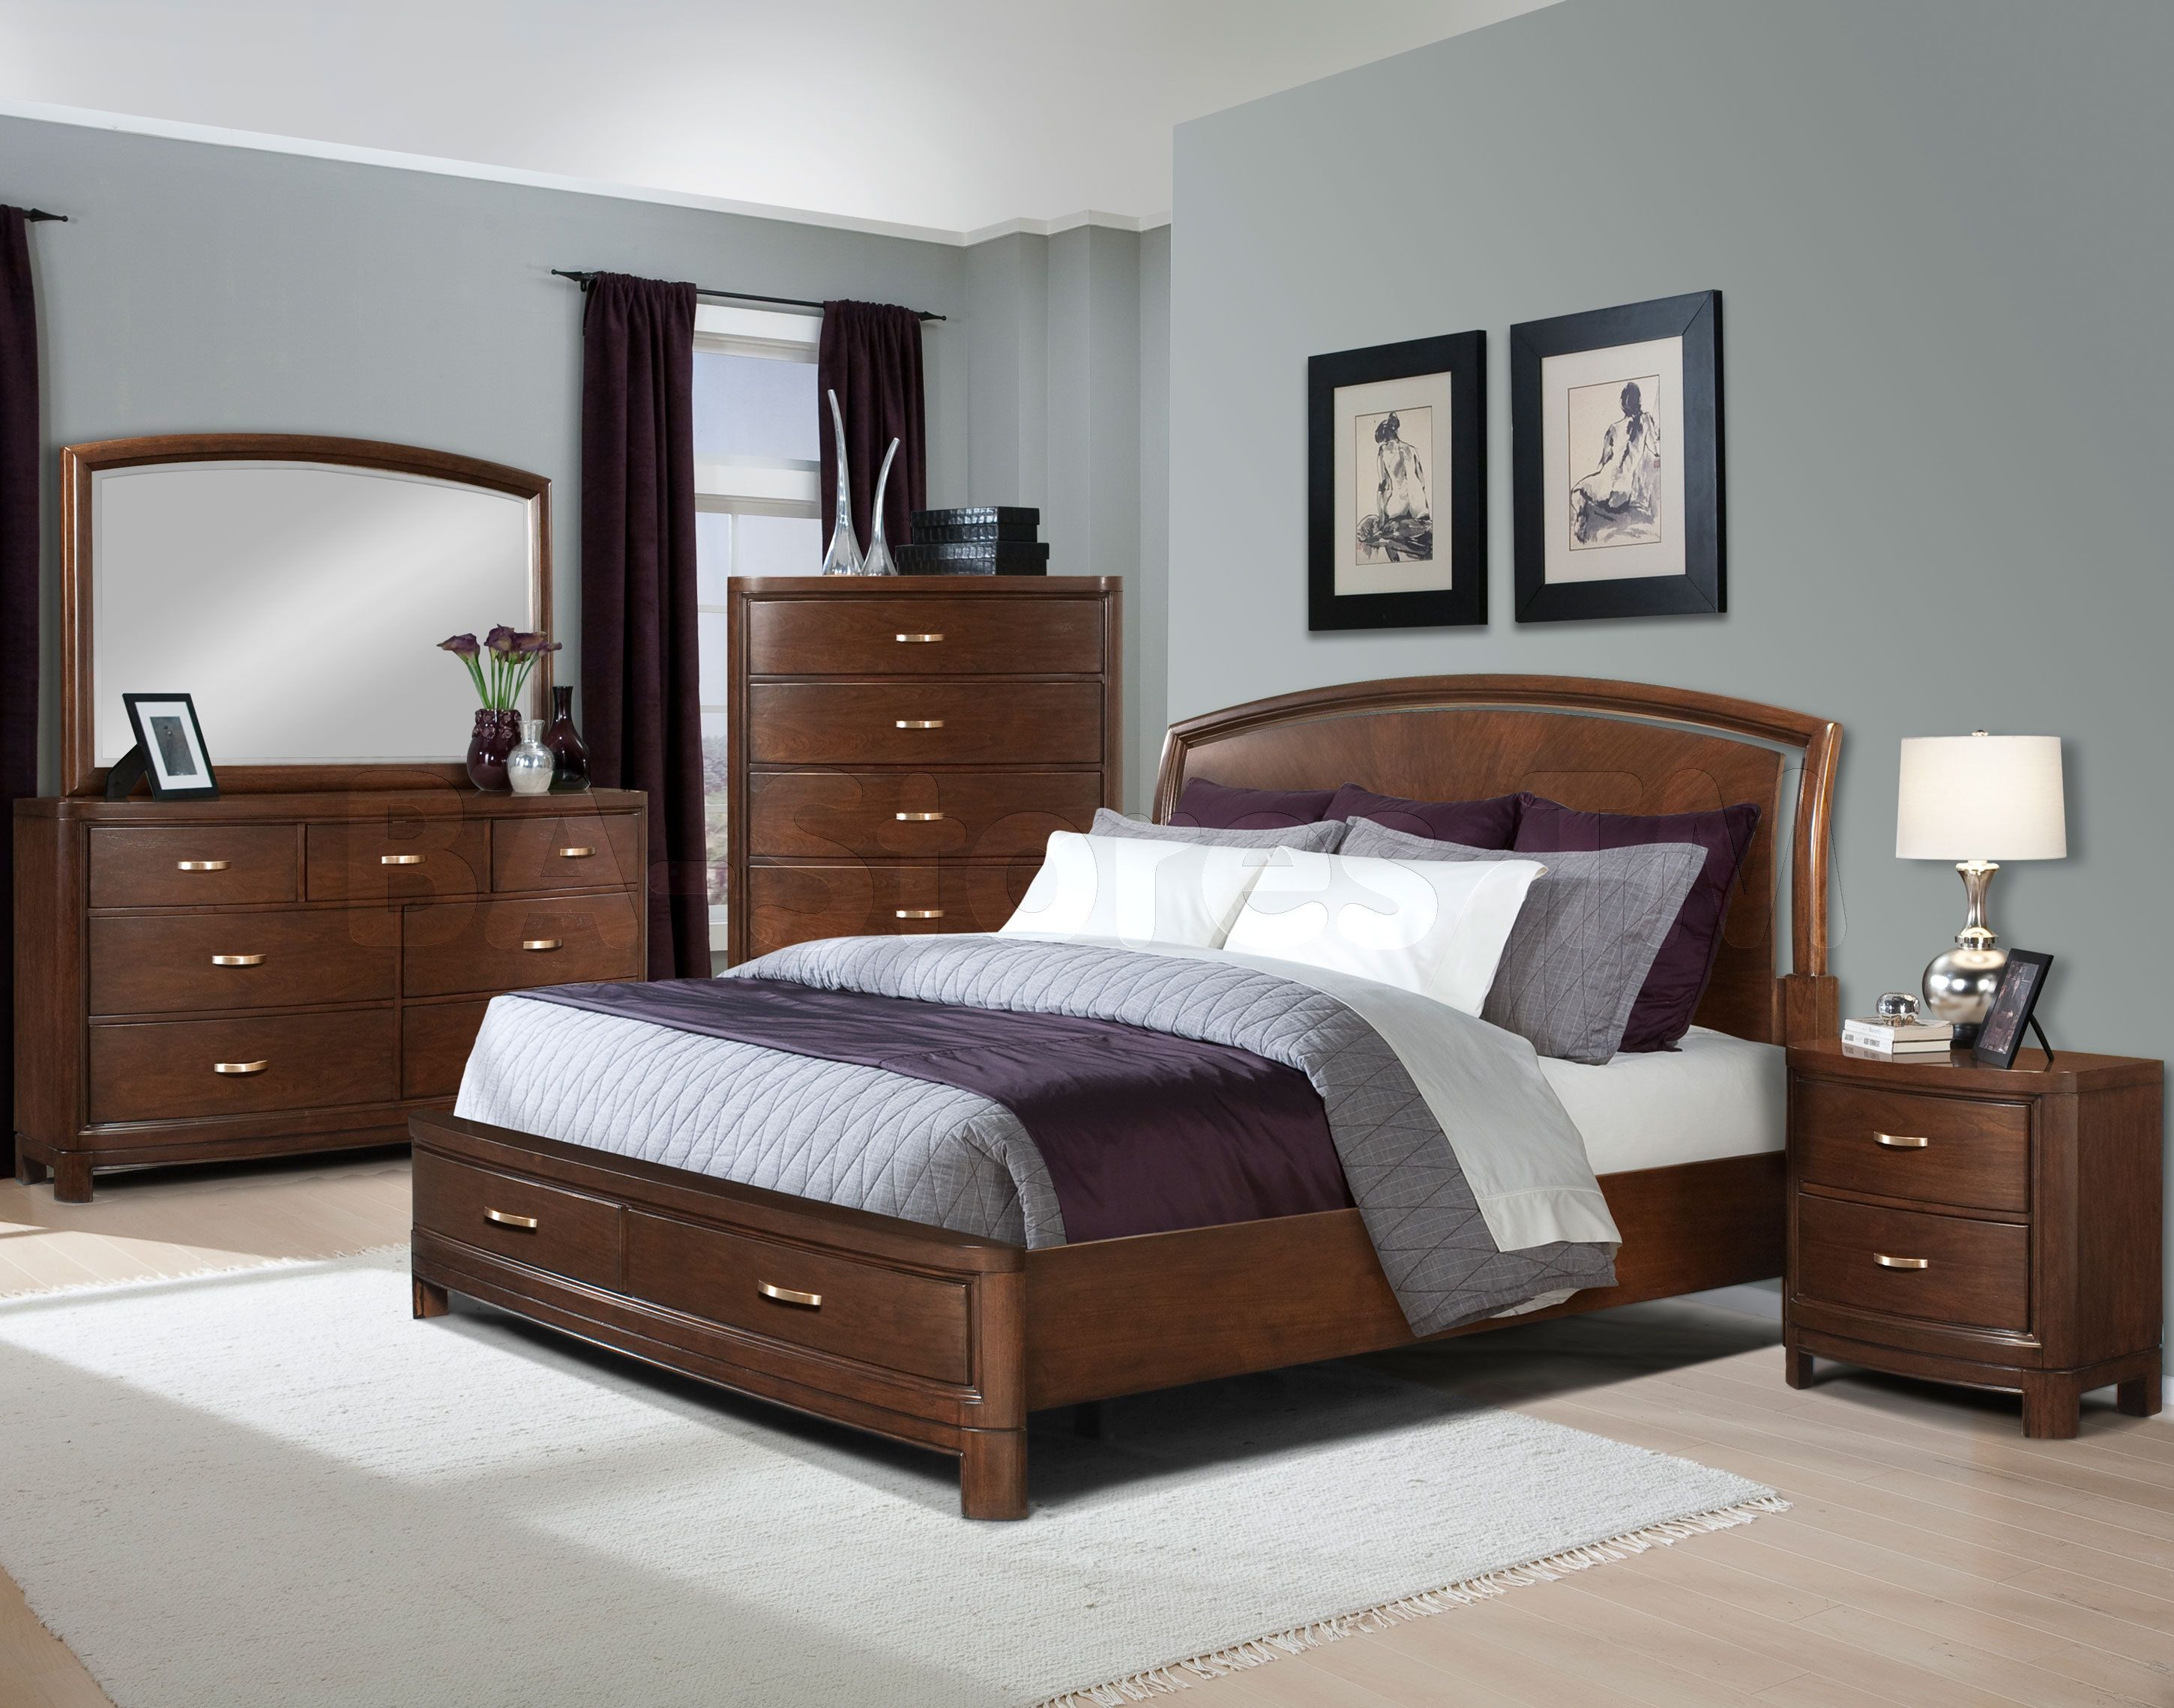 Contemporary bedroom with dark wood bed google search for Dark wood bedroom ideas